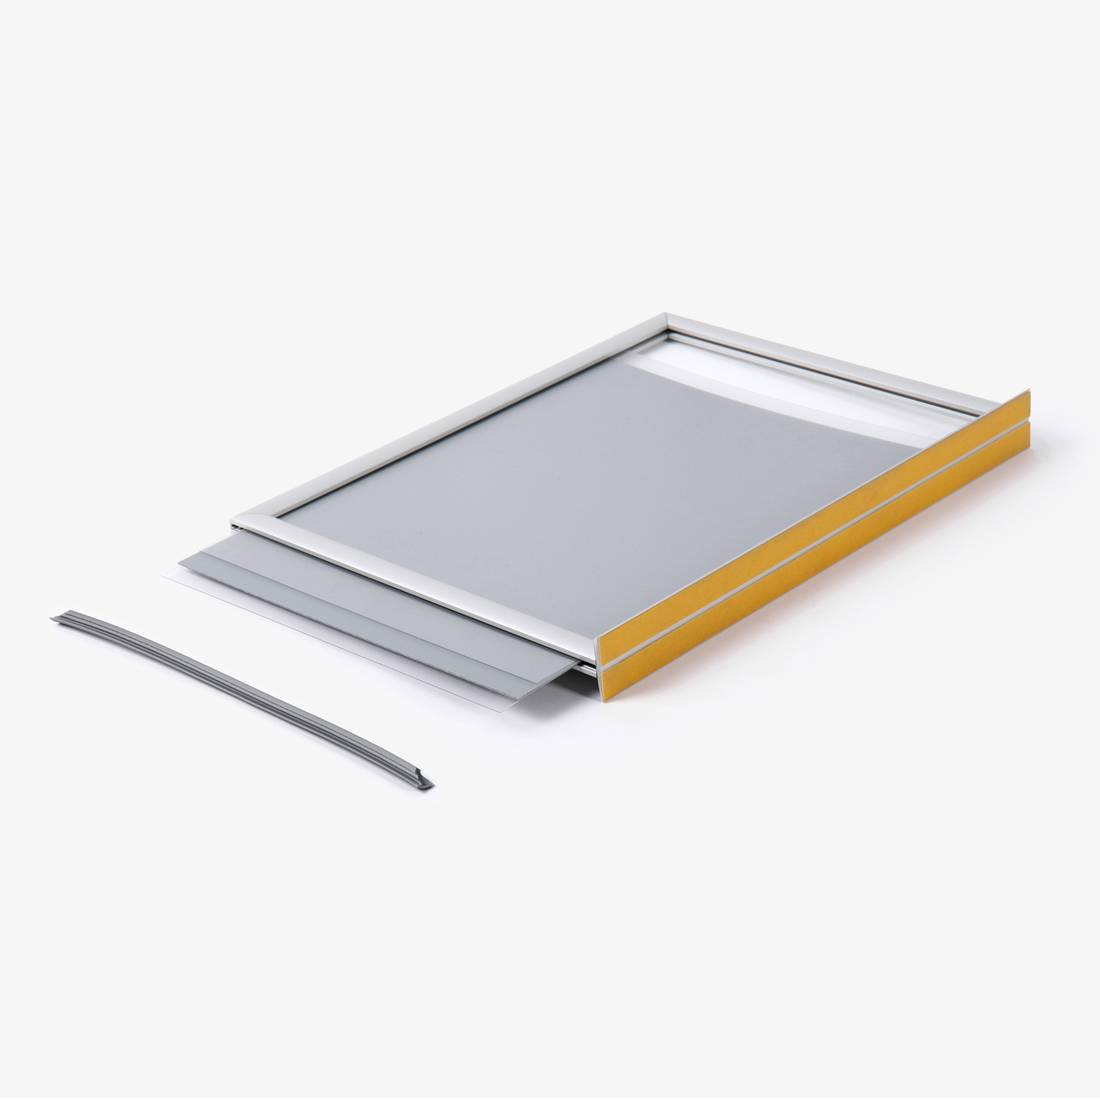 Free-standing double-sided poster frame